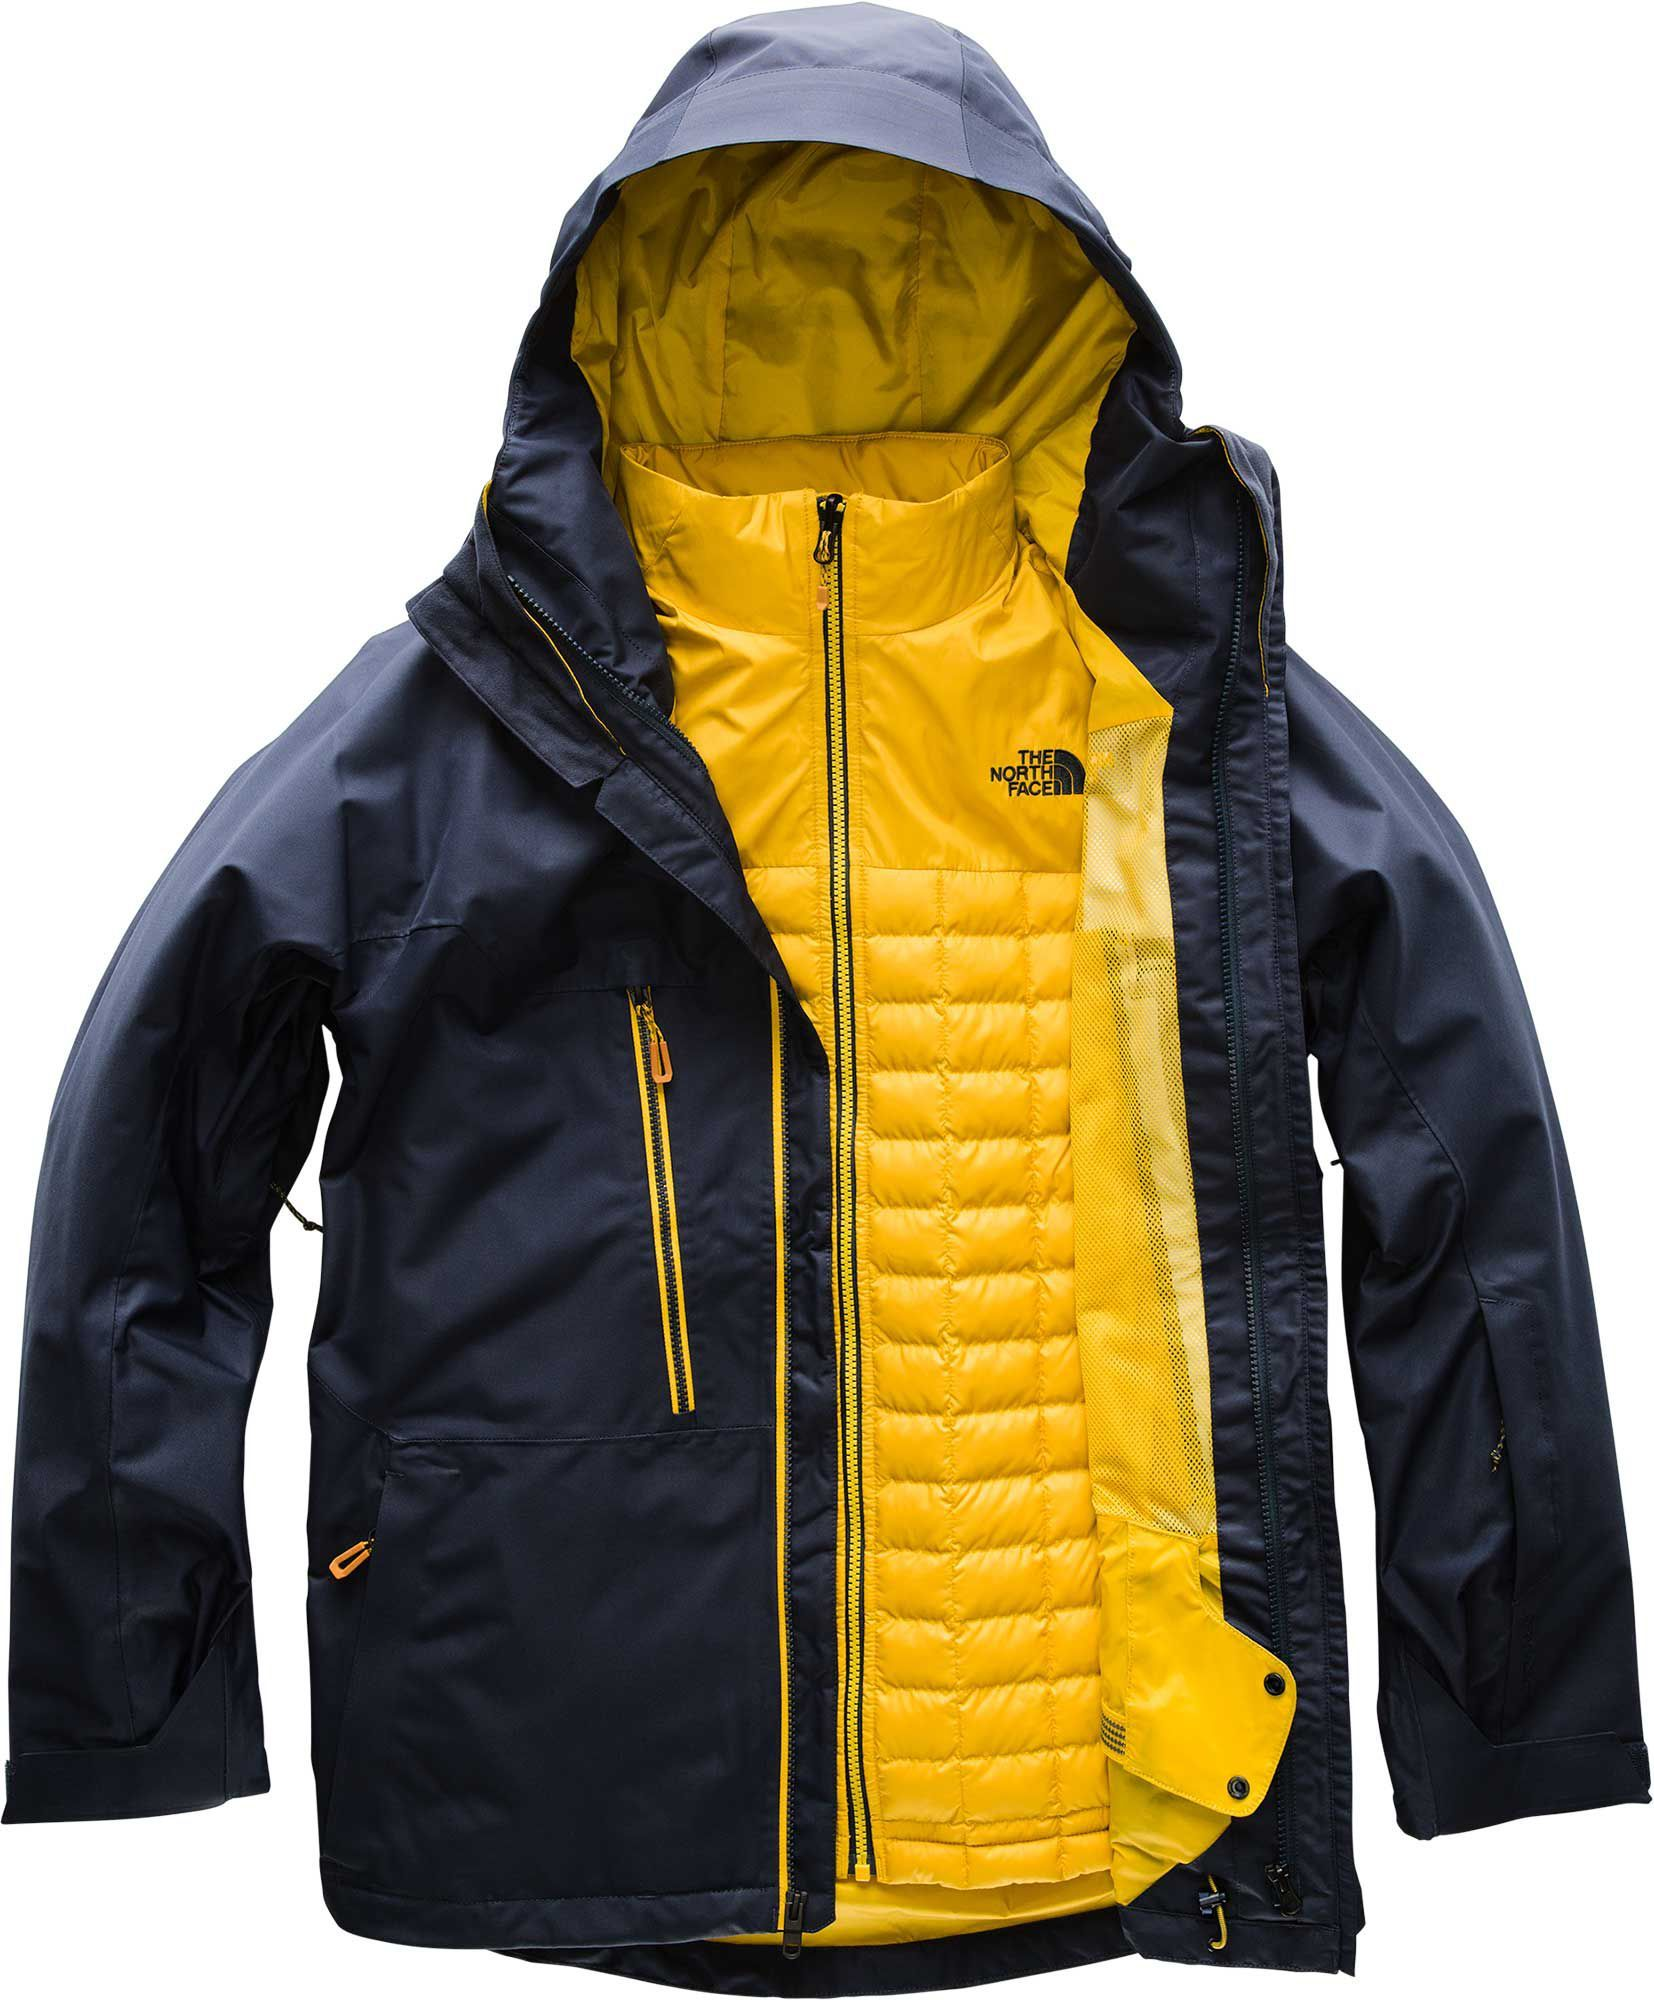 2cc452338ab The North Face Men s ThermoBall Snow Triclimate Jacket in 2019 ...